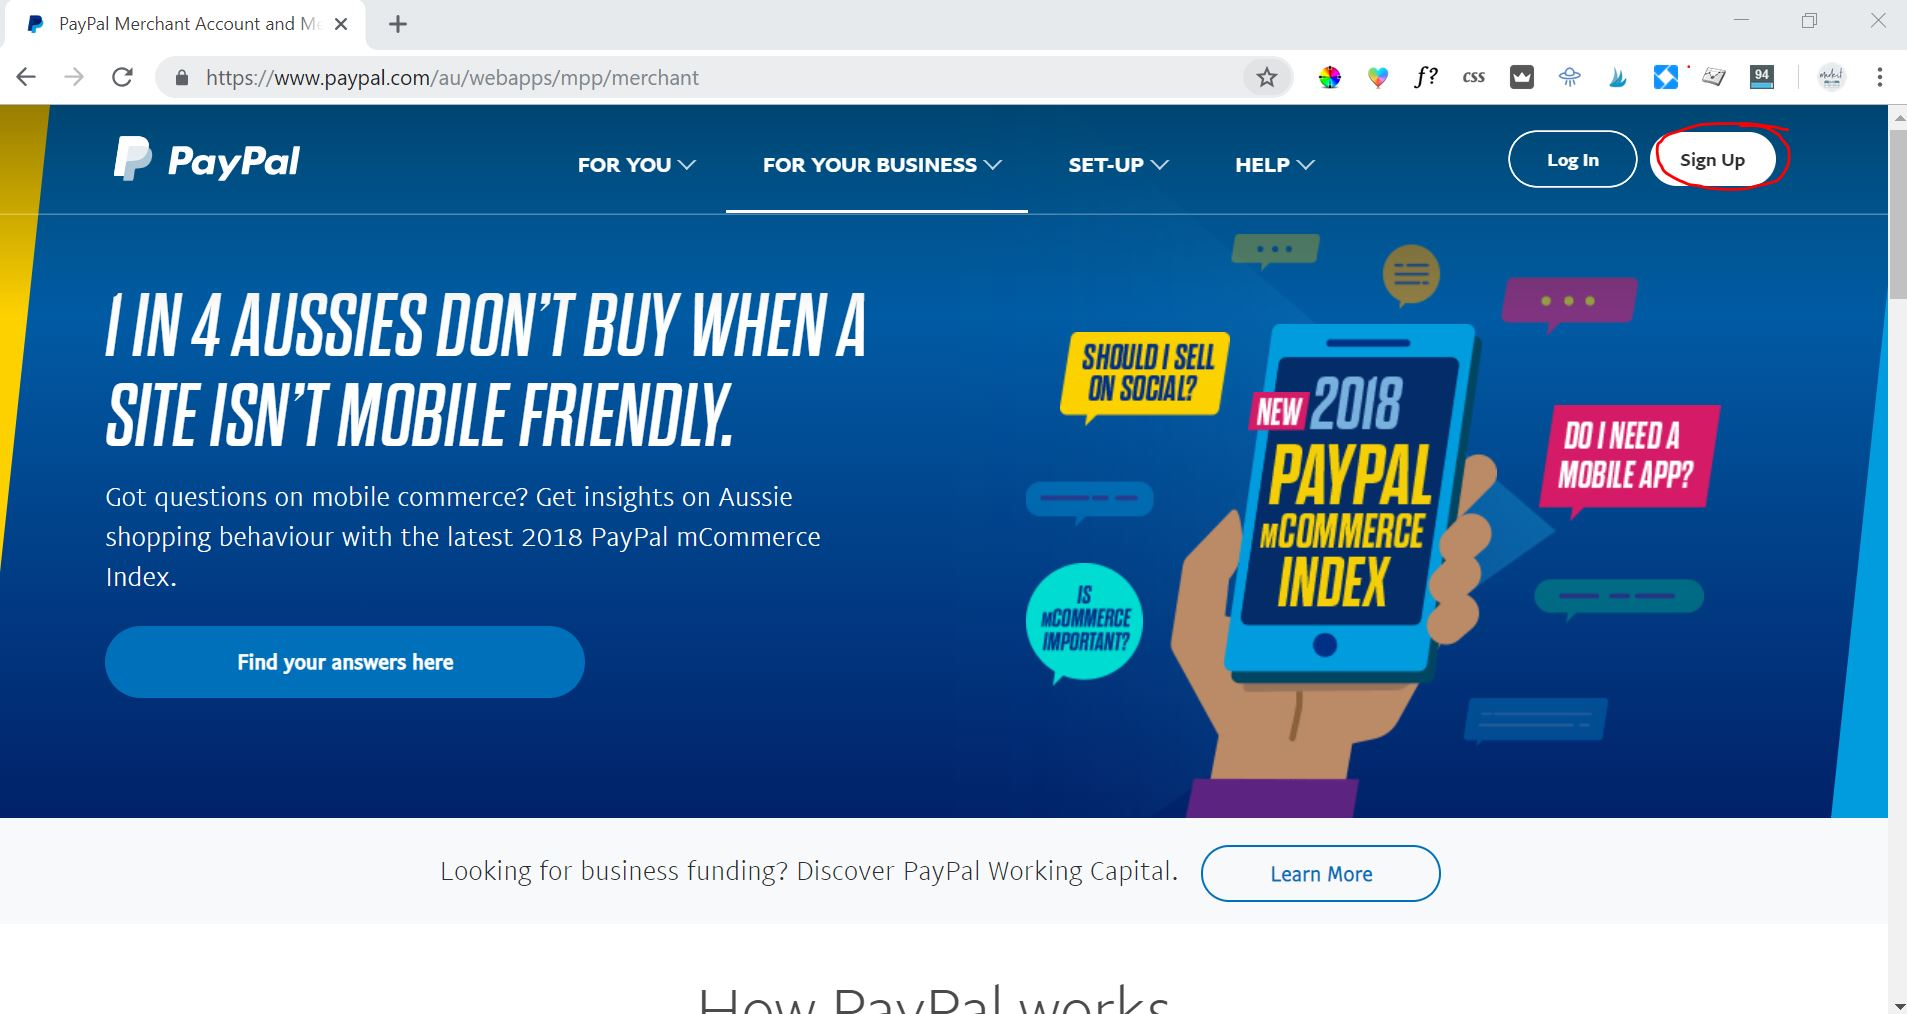 Visit PayPal.com and click the 'Sign Up' button in the top right corner of the screen.